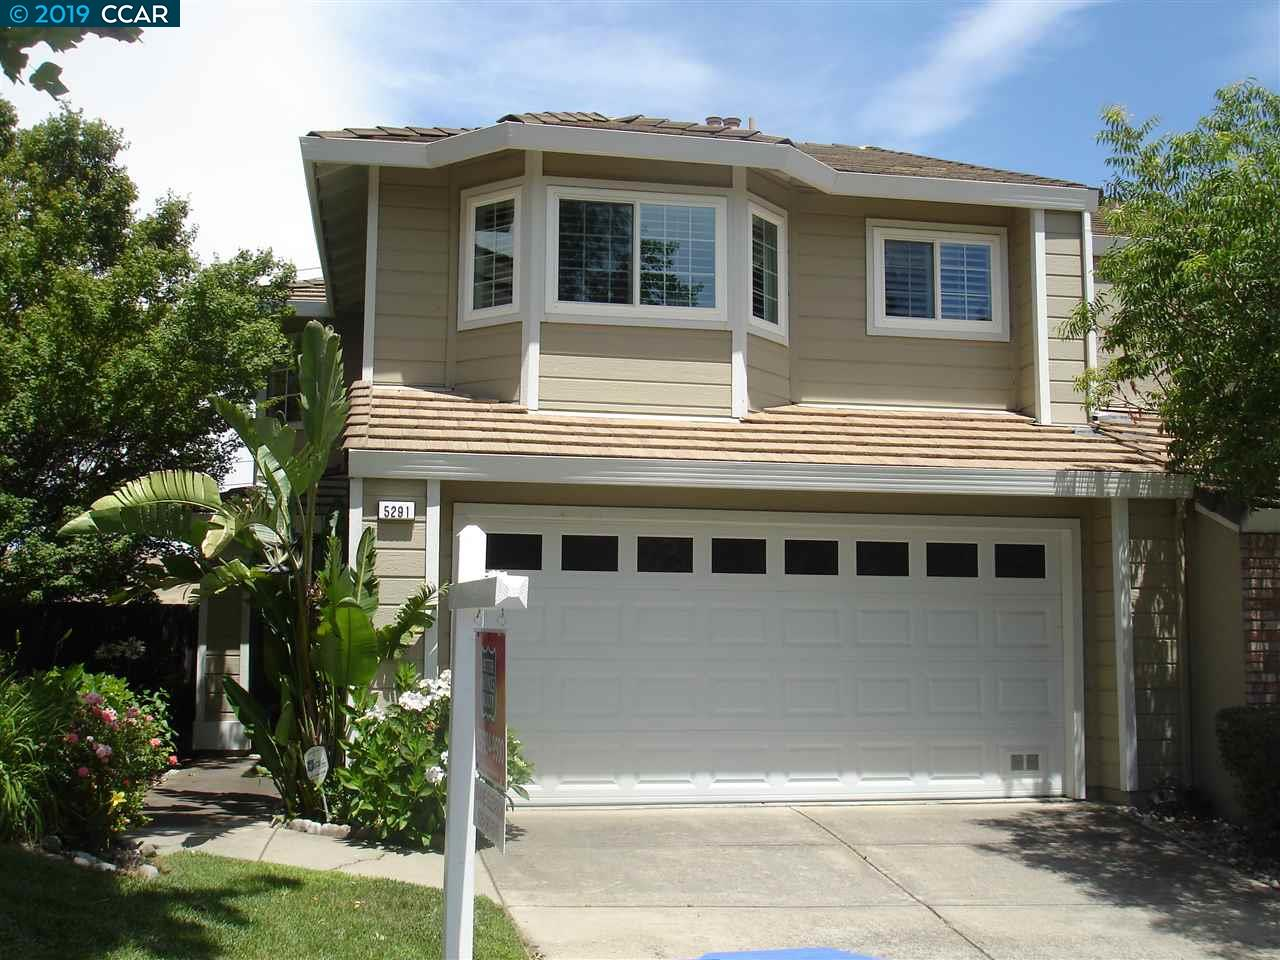 5291 Pebble Glen Dr Concord, CA 94521